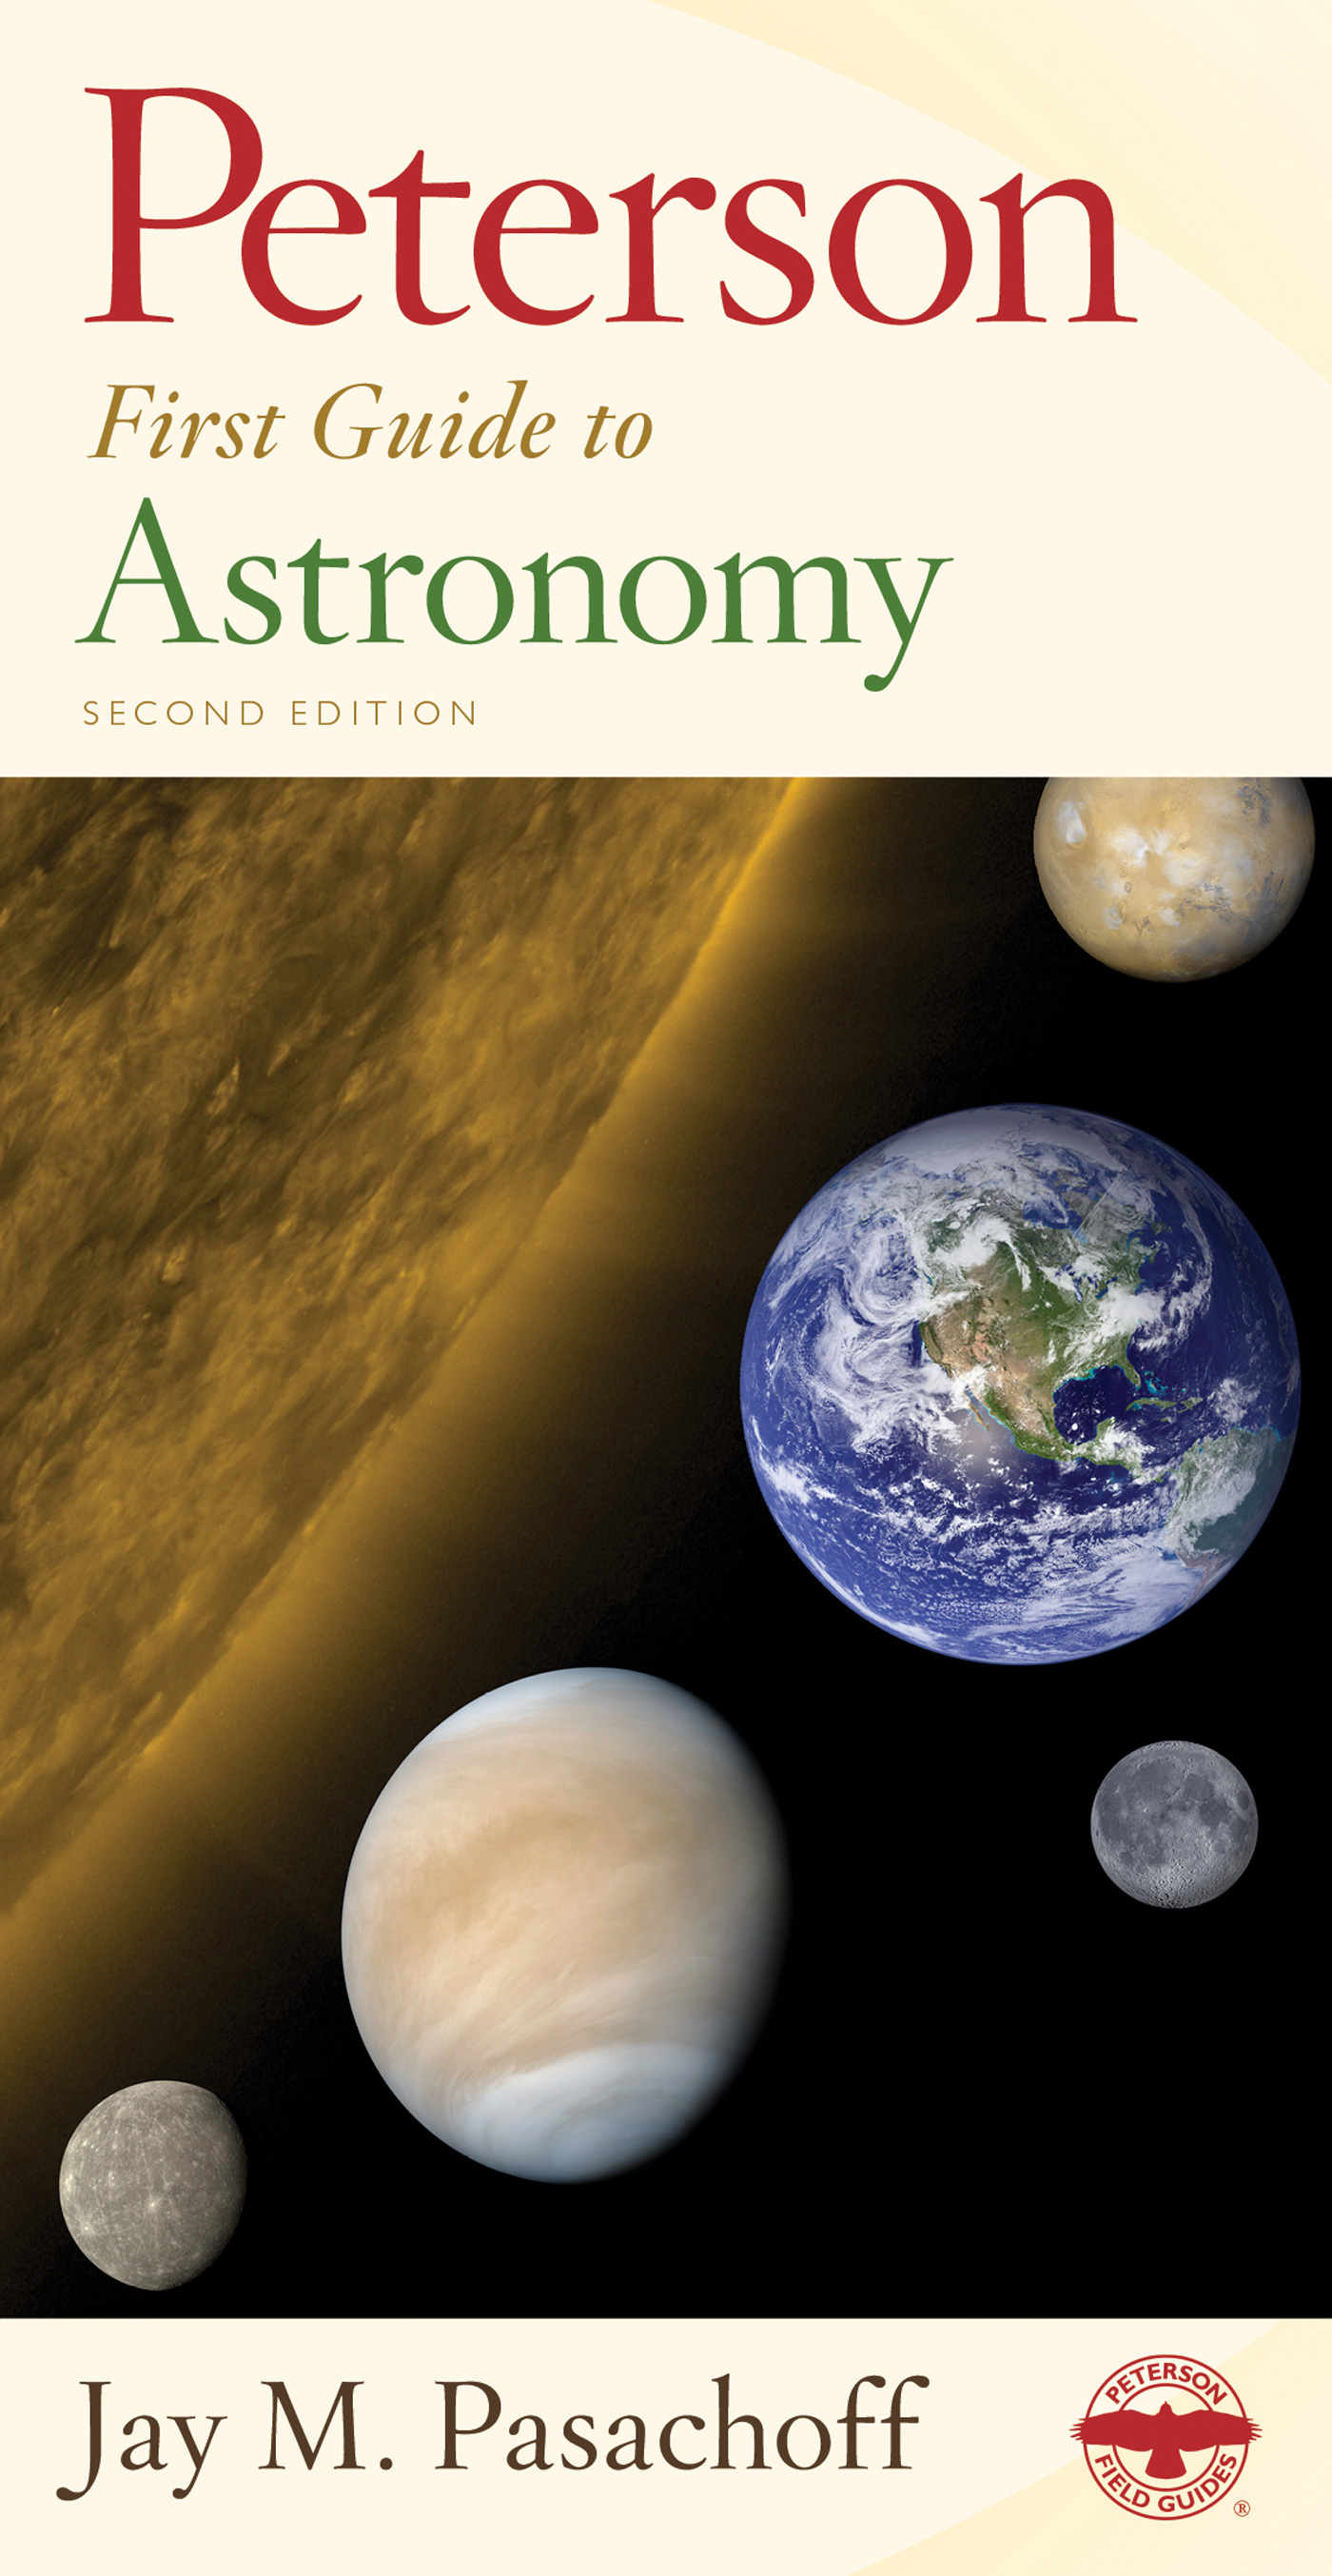 Peterson First Guide to Astronomy, Second Edition-9780544165625